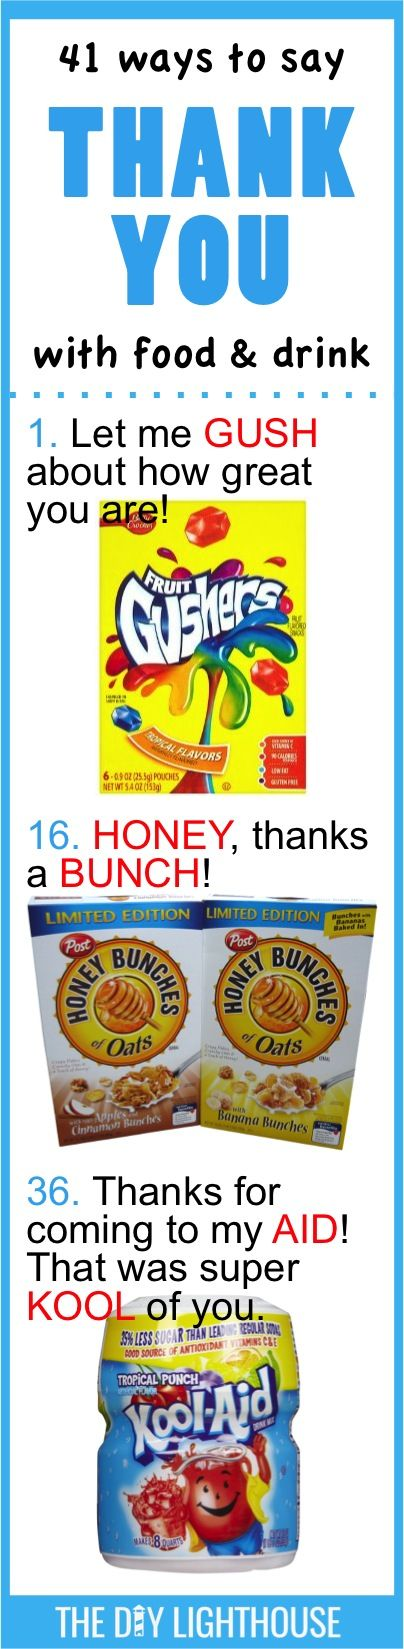 41 Ways to Say THANK YOU with Food & Drink | cute and clever ideas for thank you gift to a teacher, students, neighbor, friend, or loved one | How to say thank you with food and drink puns or candy